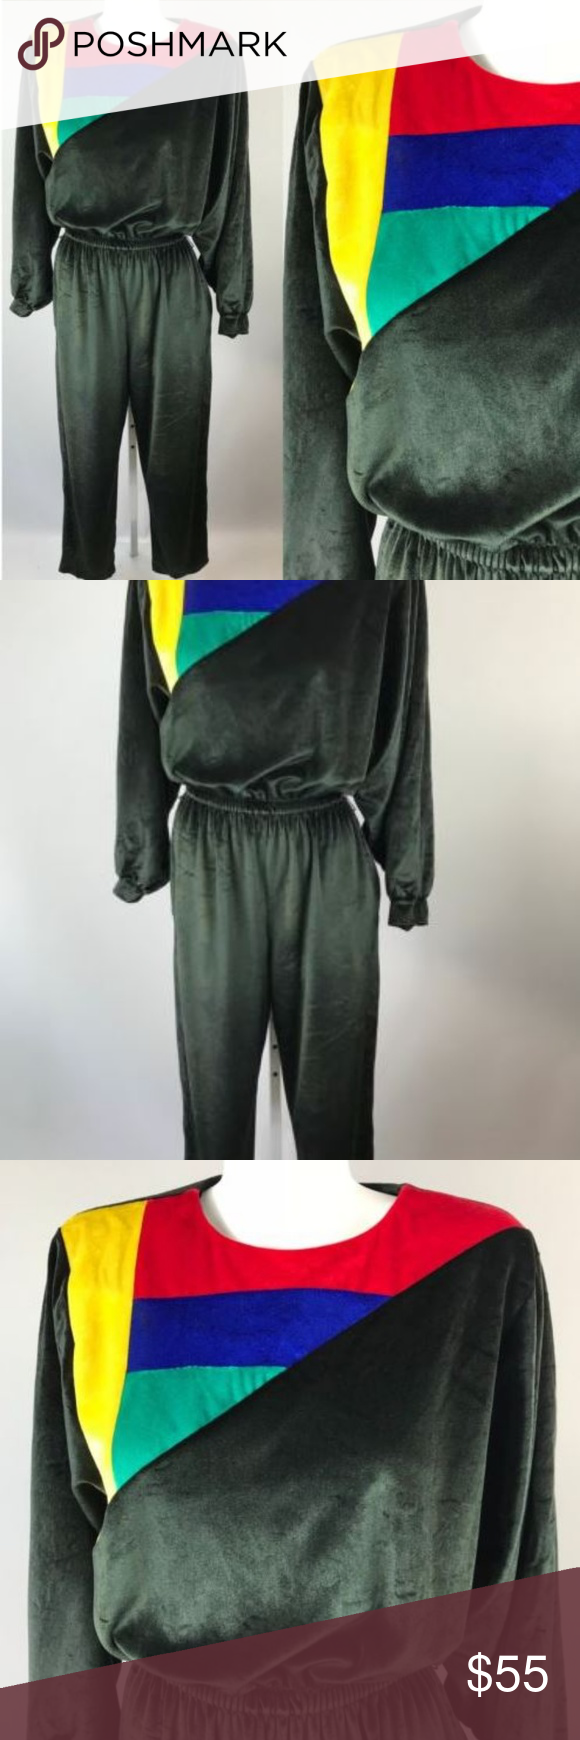 7b706cf82f3 Vtg 70s David Brown Long Sleeve Velvet Jumpsuit Vtg 70s David Brown Long  Sleeve Black Velvet